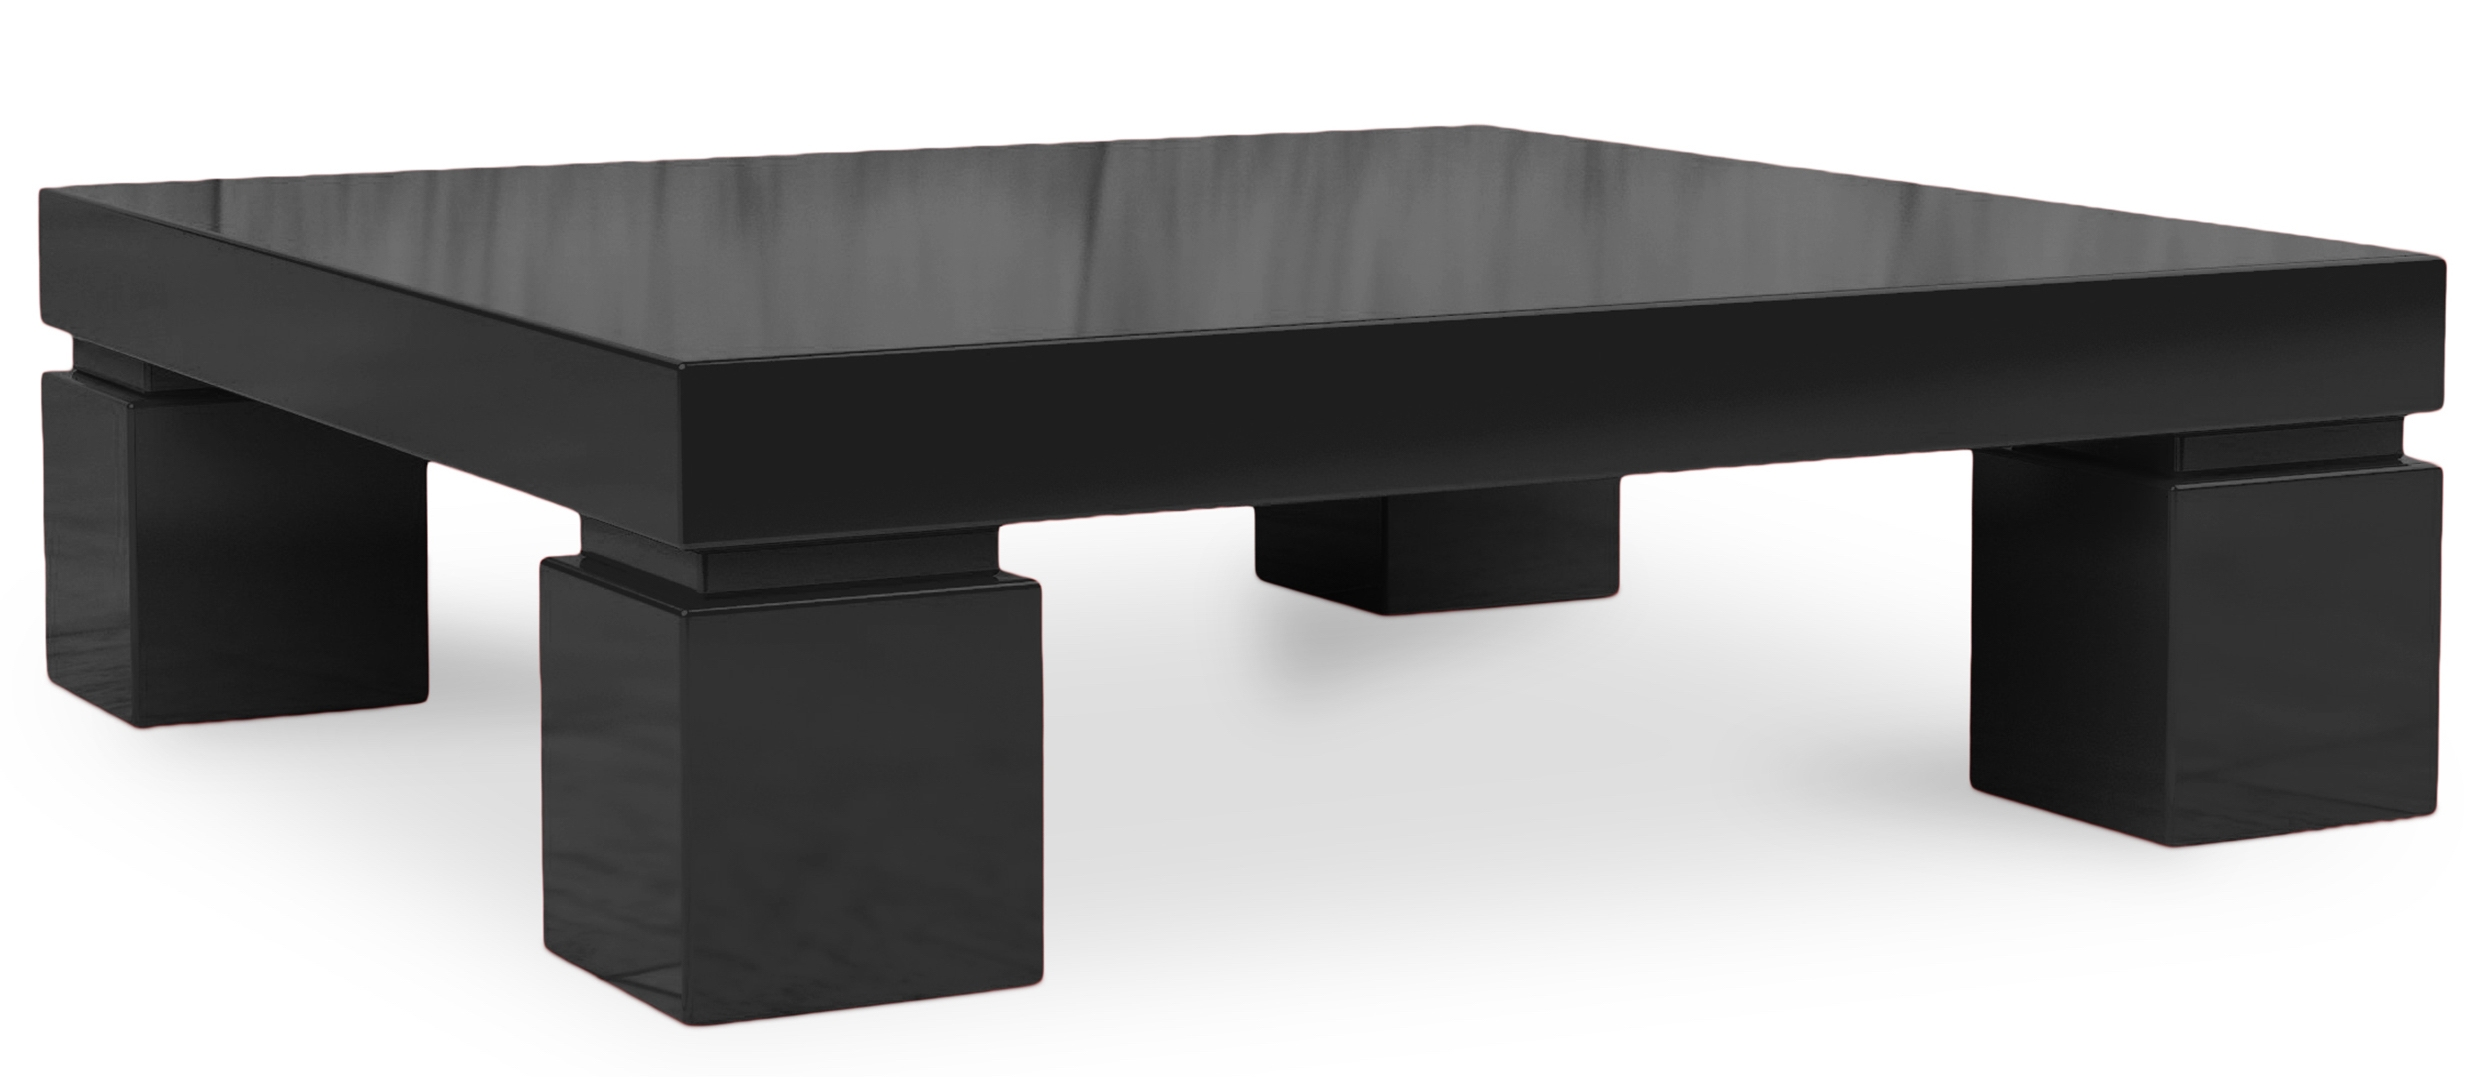 Table basse carr e laqu e noir kare - Tables basses noires ...